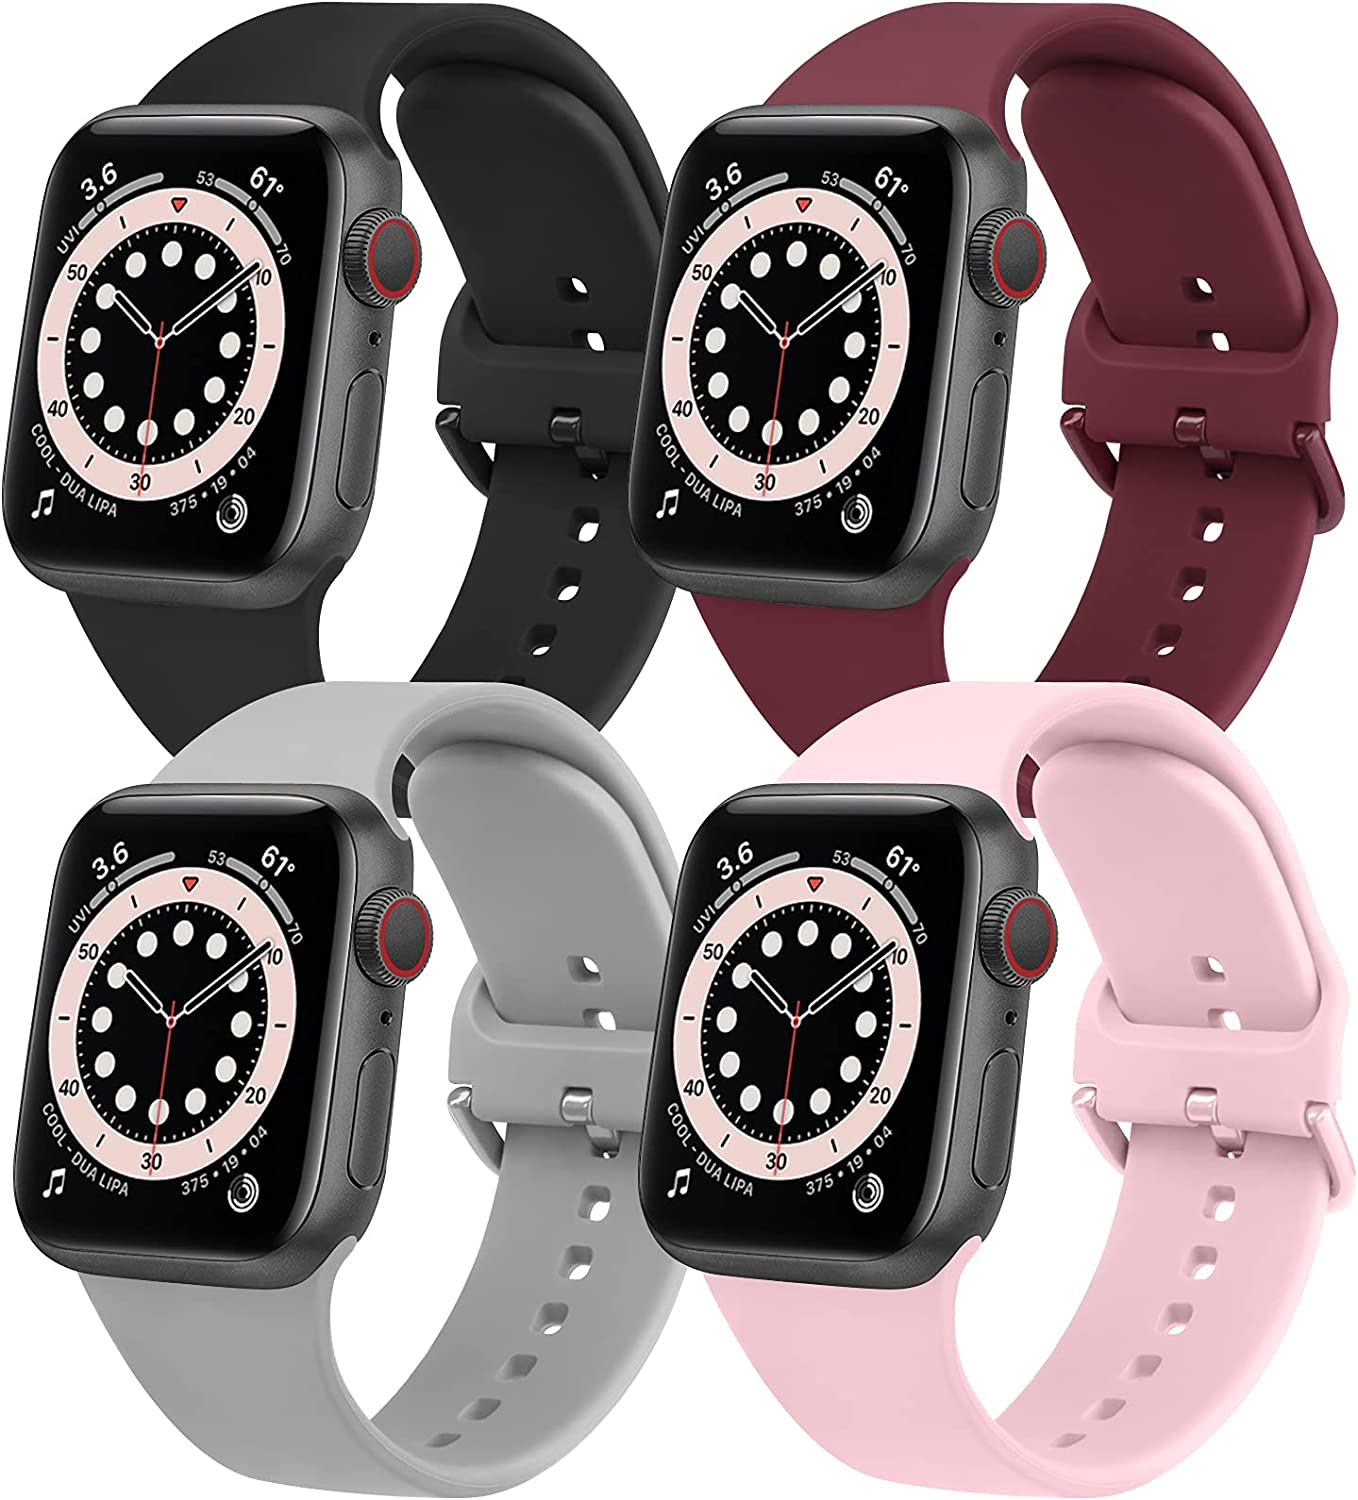 [Pack 4] YILED Replacement Bands Compatible with Apple Watch Bands 44mm 42mm for Women Men, Soft Bands Compatible with iWatch SE & Series 6 5 4 3 2 1, Black+Wine Red+Gray+Pink, 42mm/44mm